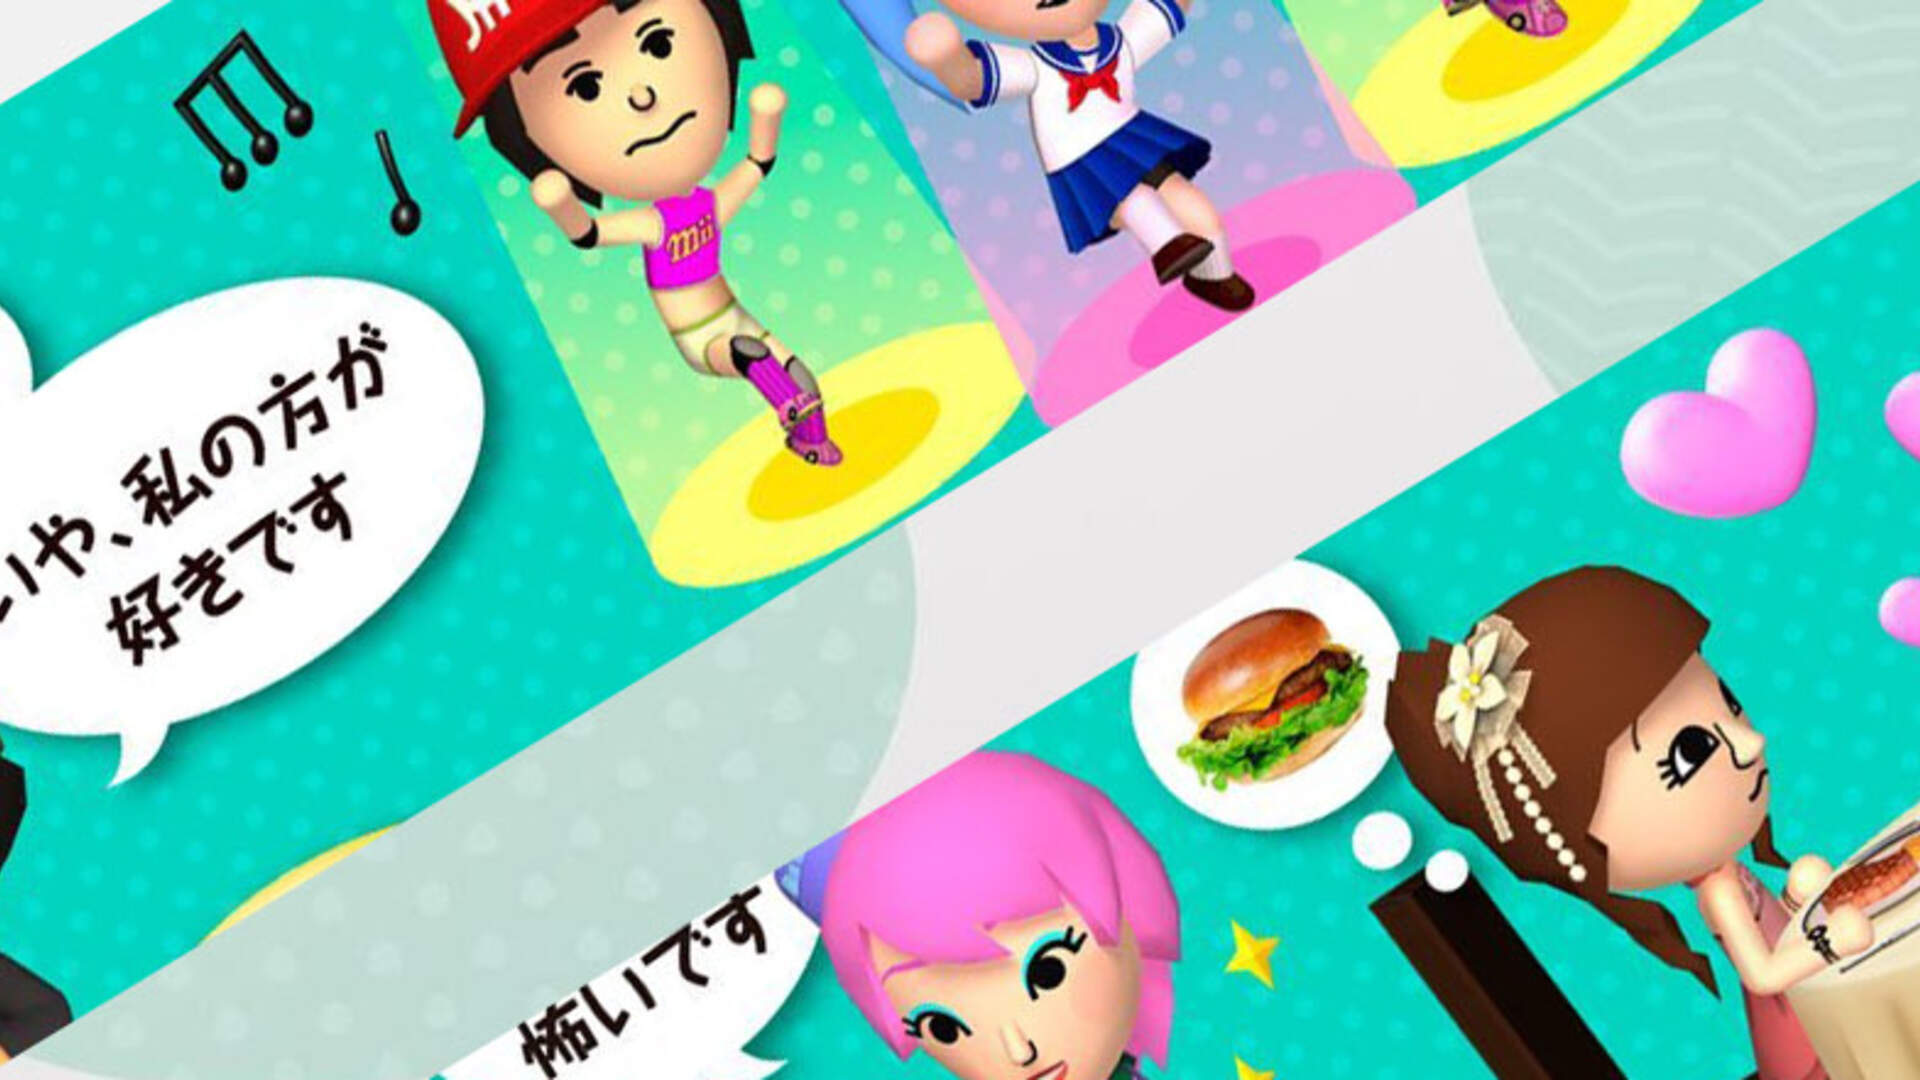 Nintendo Leans the Wrong Way with Tomodachi Collection's Gay Bug